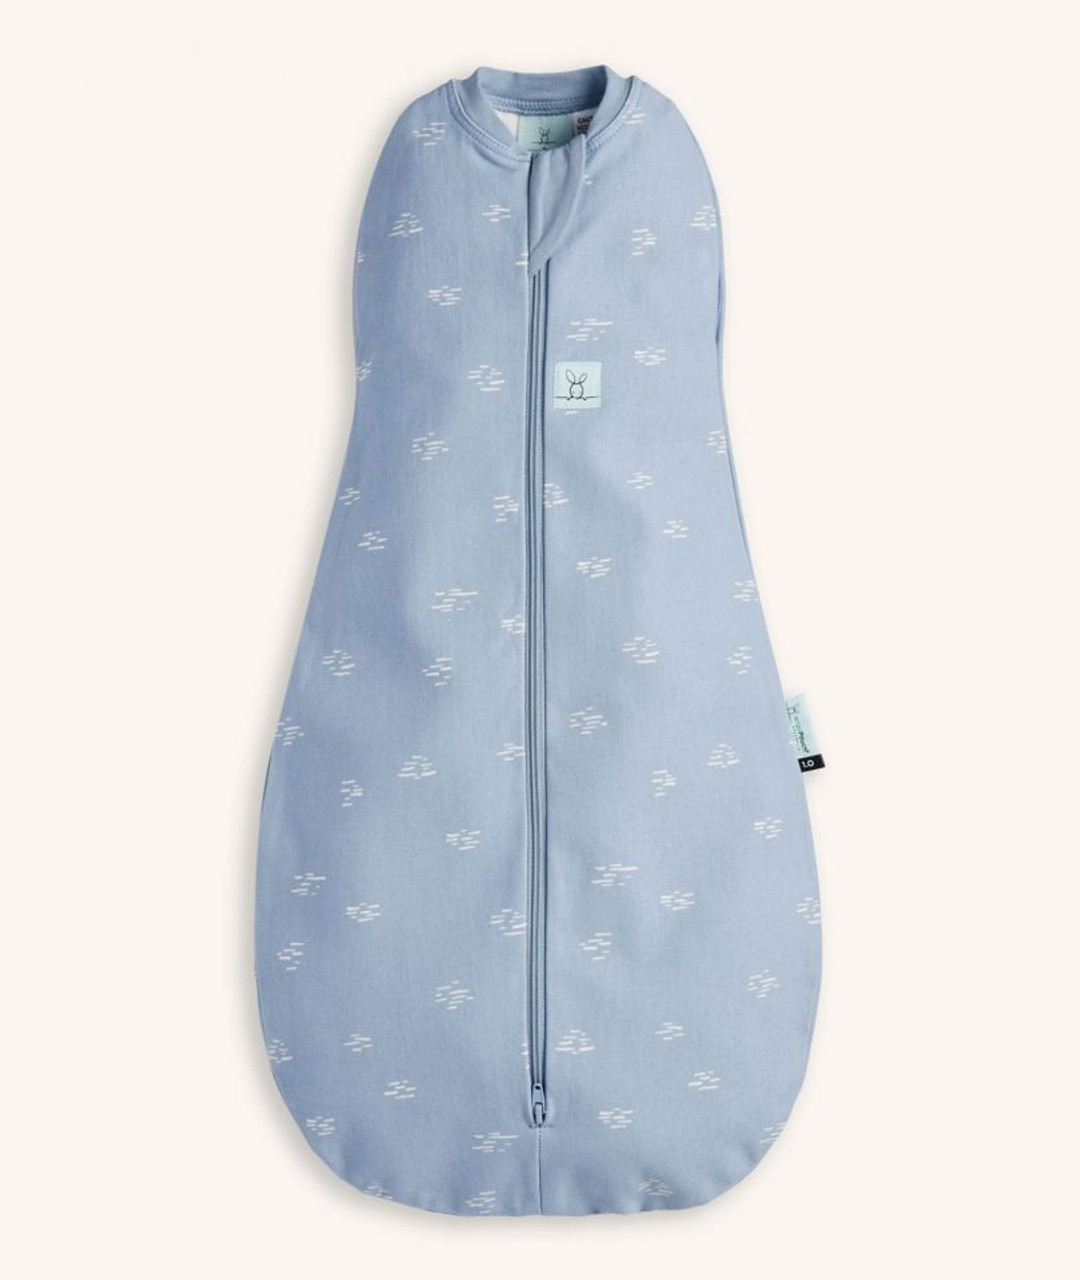 ergoPouch Cocoon Swaddle Bag 0.2 Tog 3-6 Months at Baby Barn Discounts Lightweight baby swaddle cocoon style for hot summer nights.